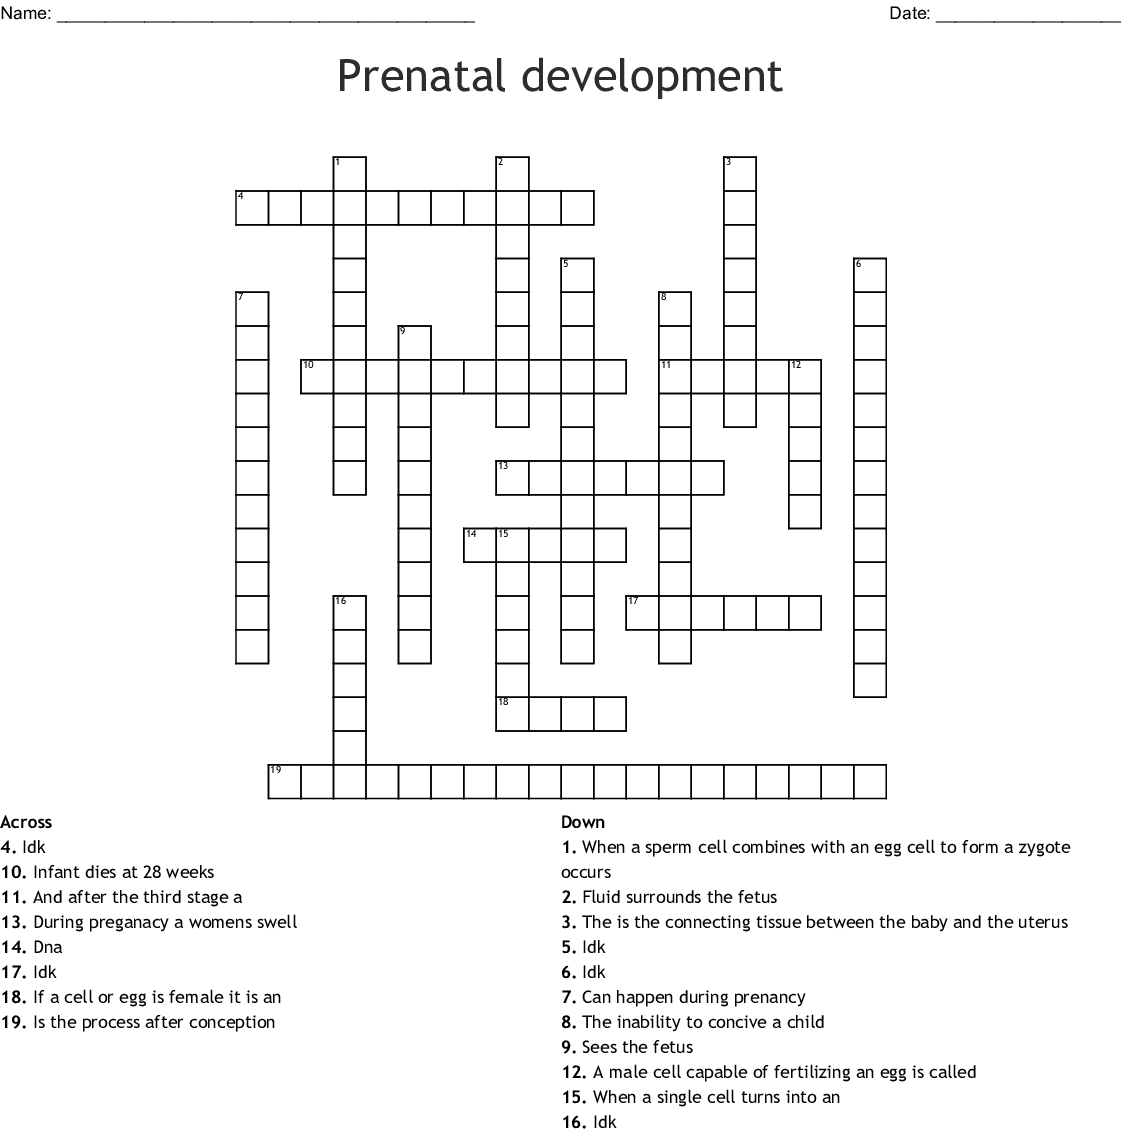 What Are The 3 Stages Of Prenatal Development Called